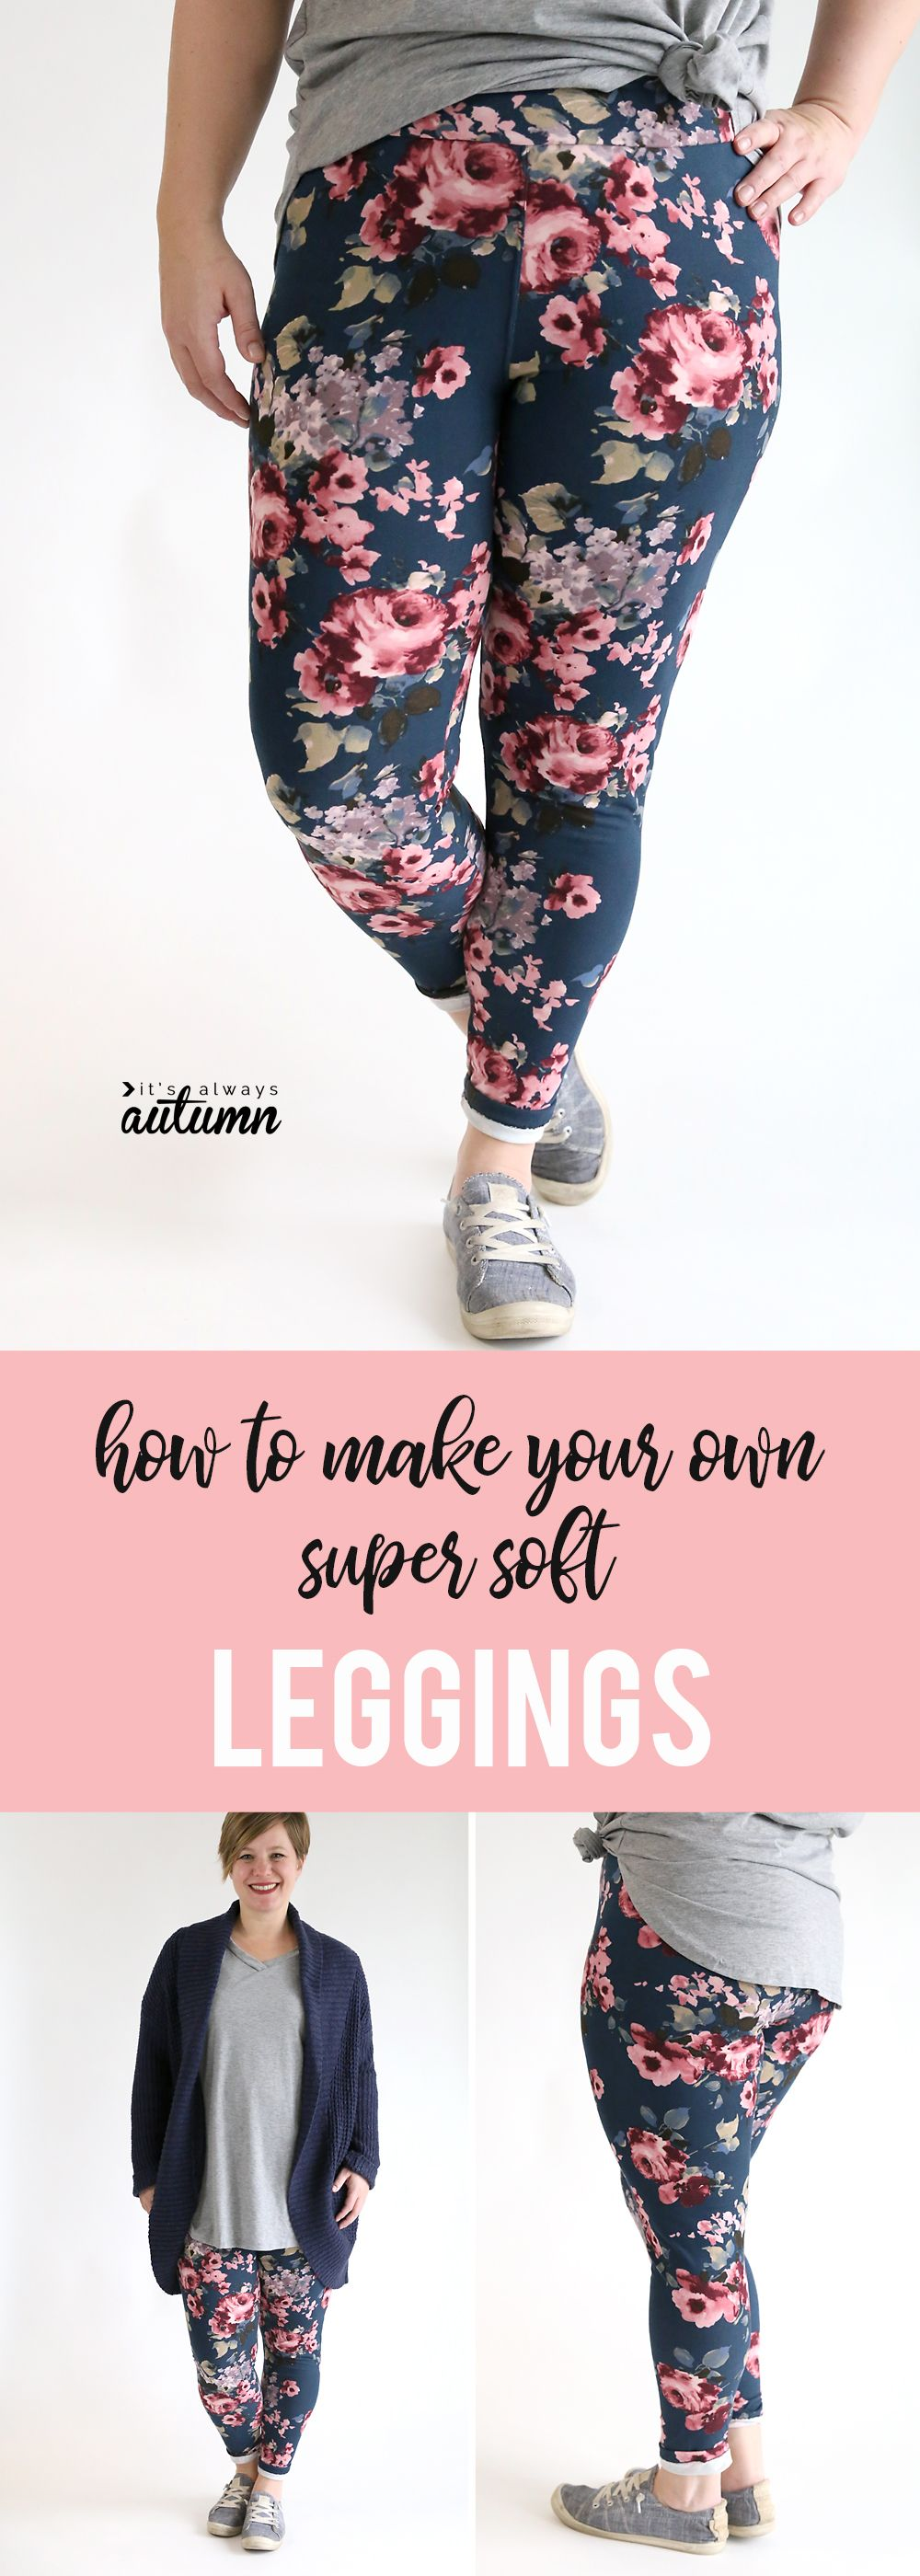 How to make buttery soft leggings at home. How to sew your own LulaRoe leggings. #itsalwaysautumn #sewing #sewingpattern #leggings